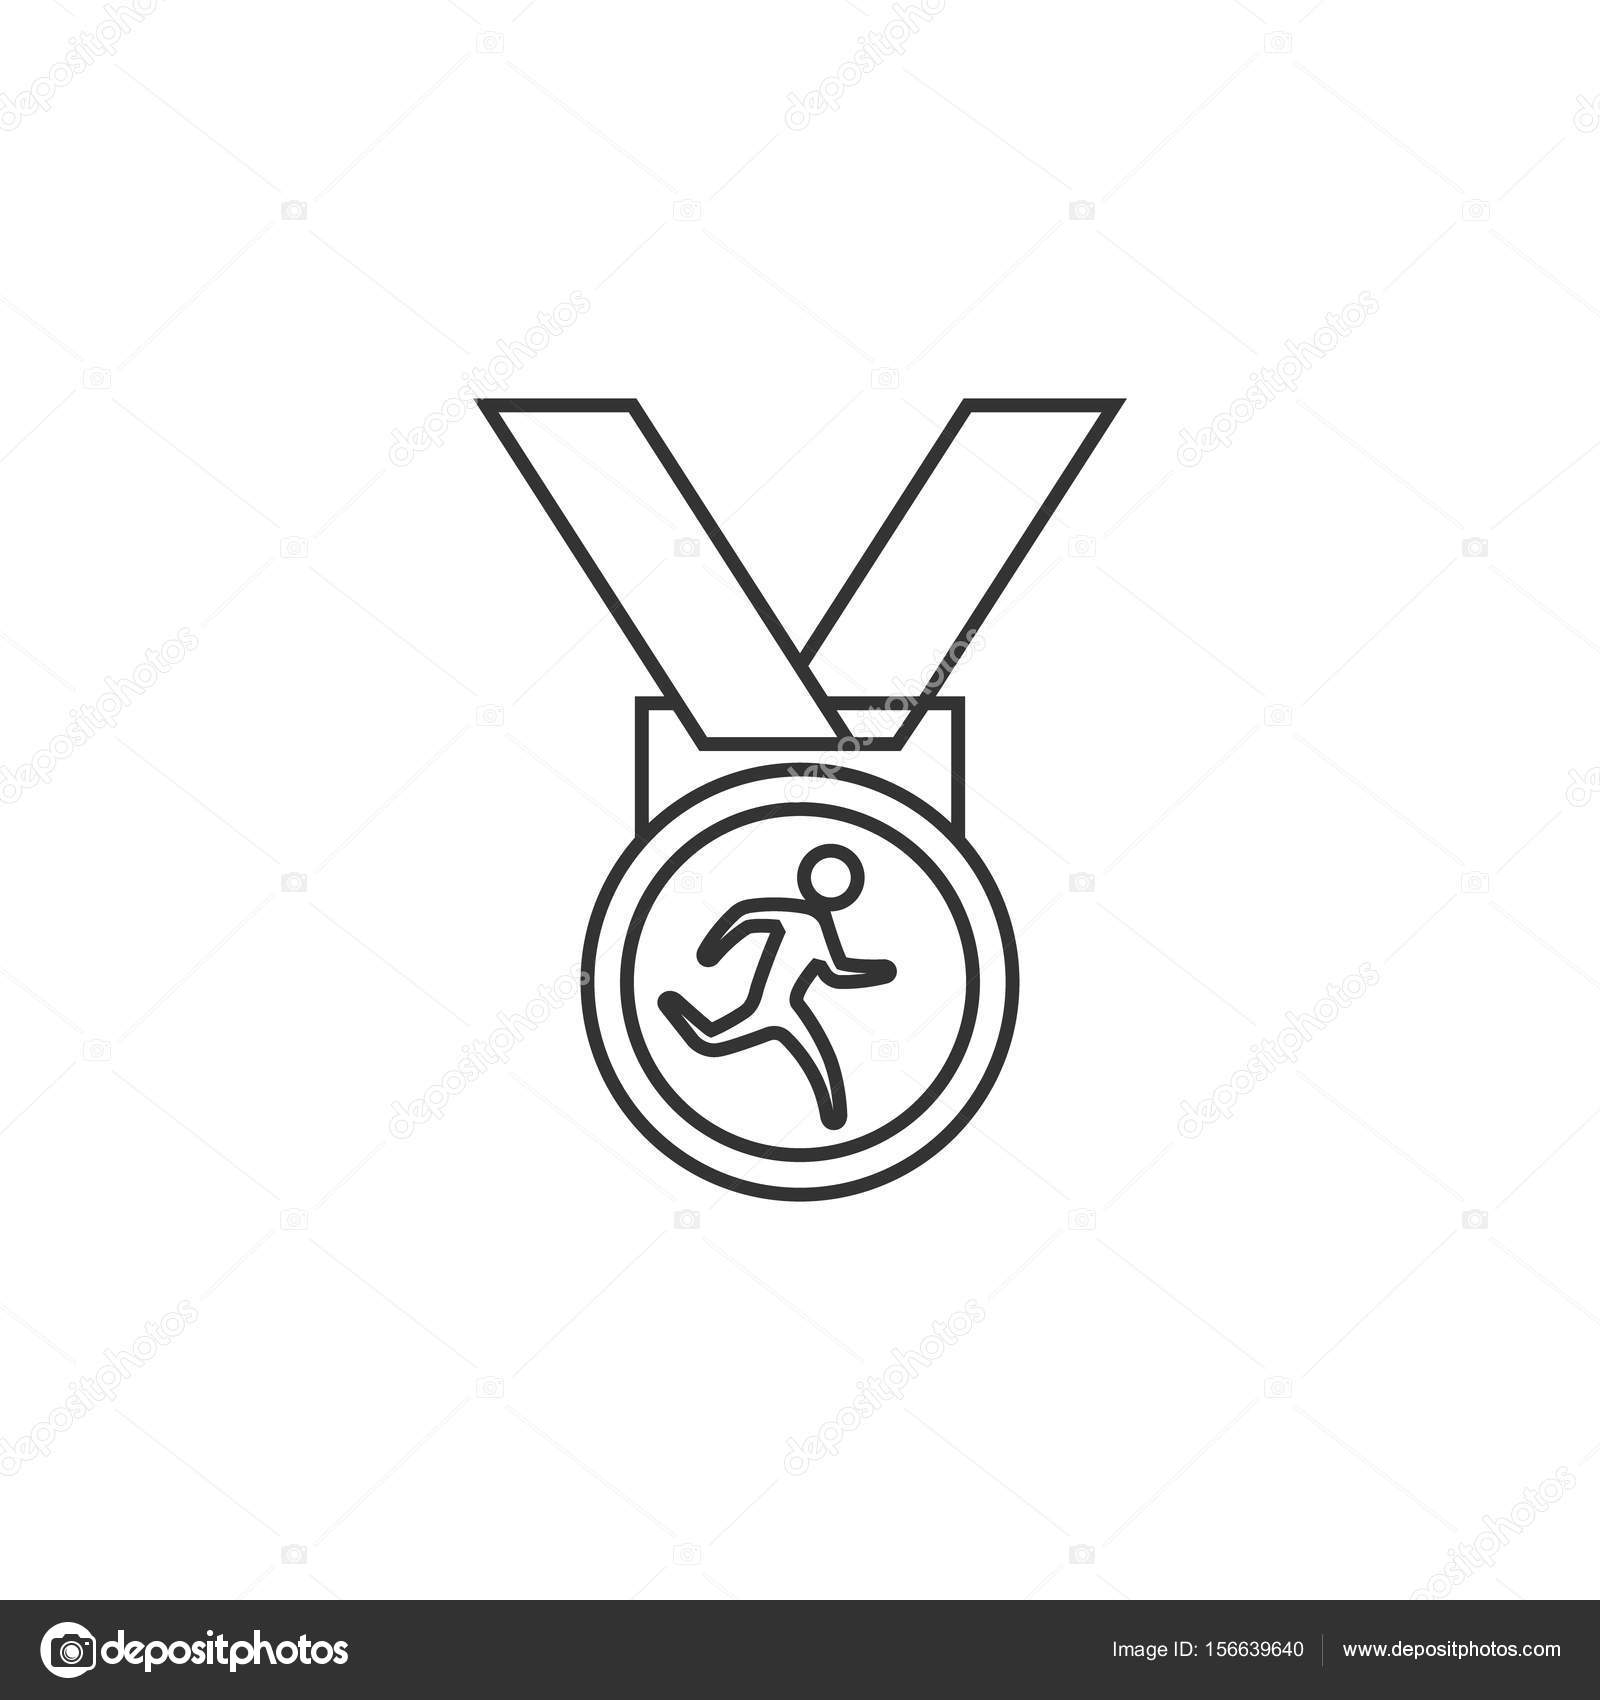 Outline icon - Athletic medal — Stock Vector © puruan #156639640